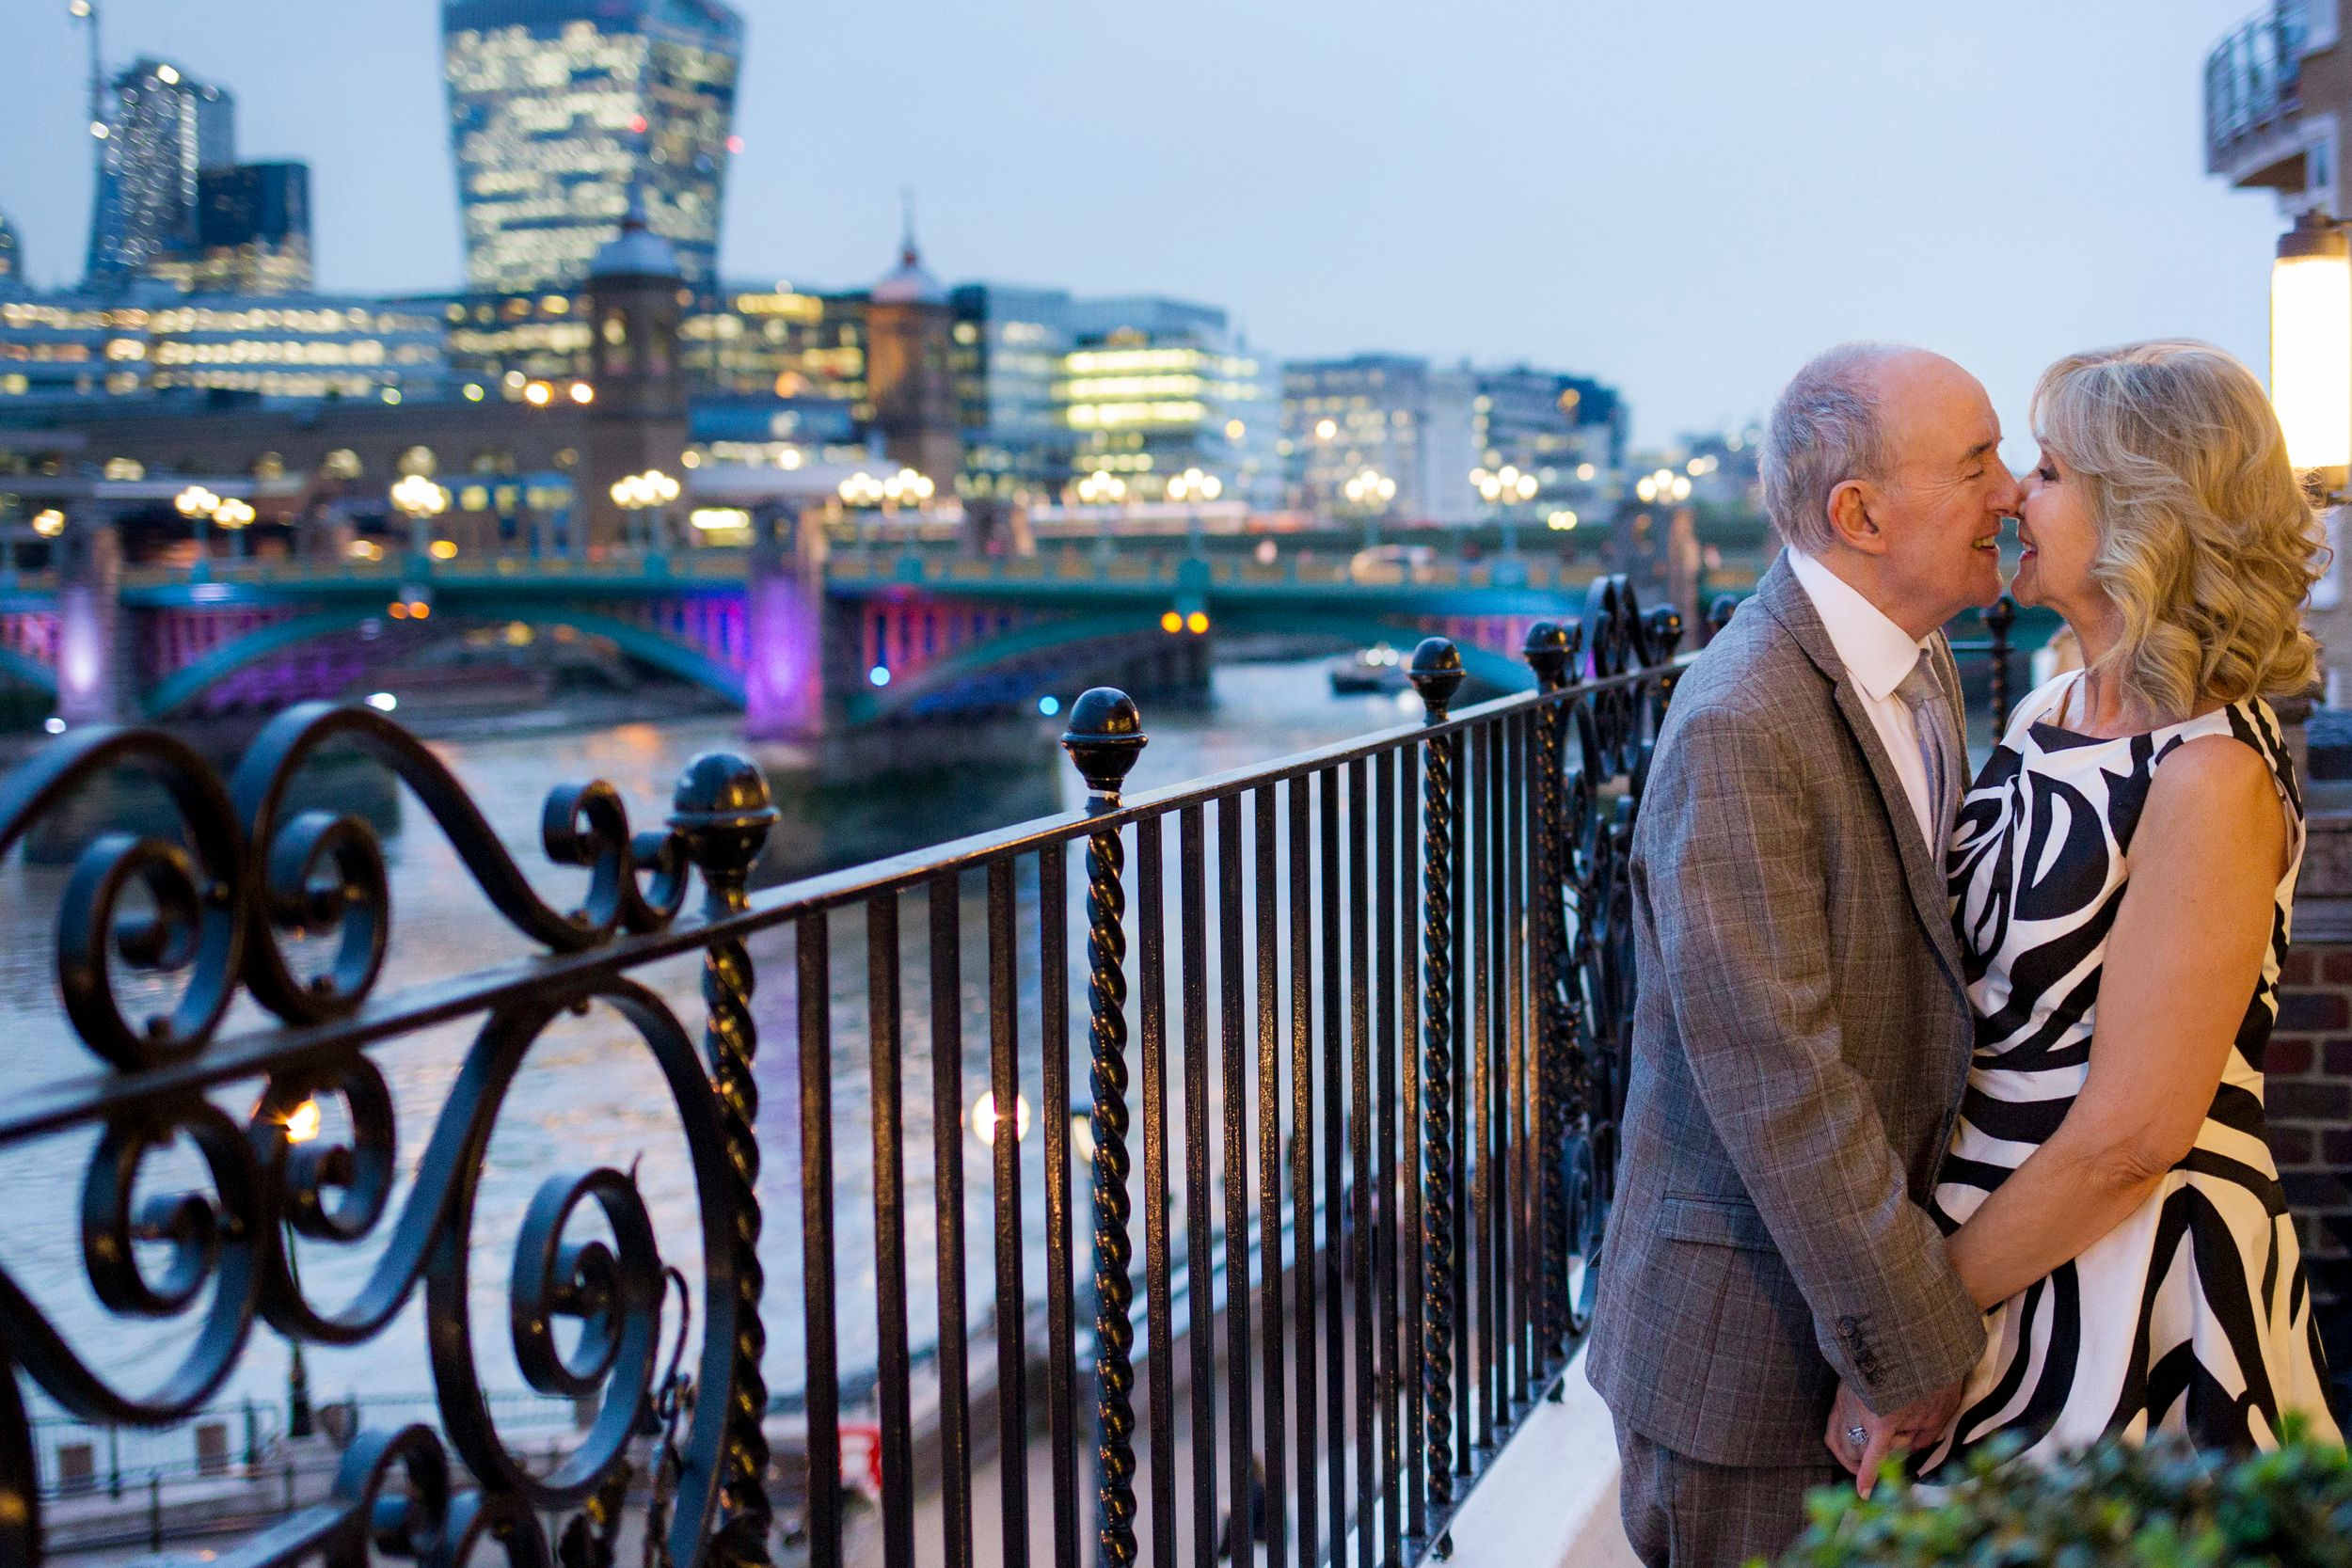 Bride and groom share a kiss on a balcony in front of the London skyline at dusk - Wedding Photography